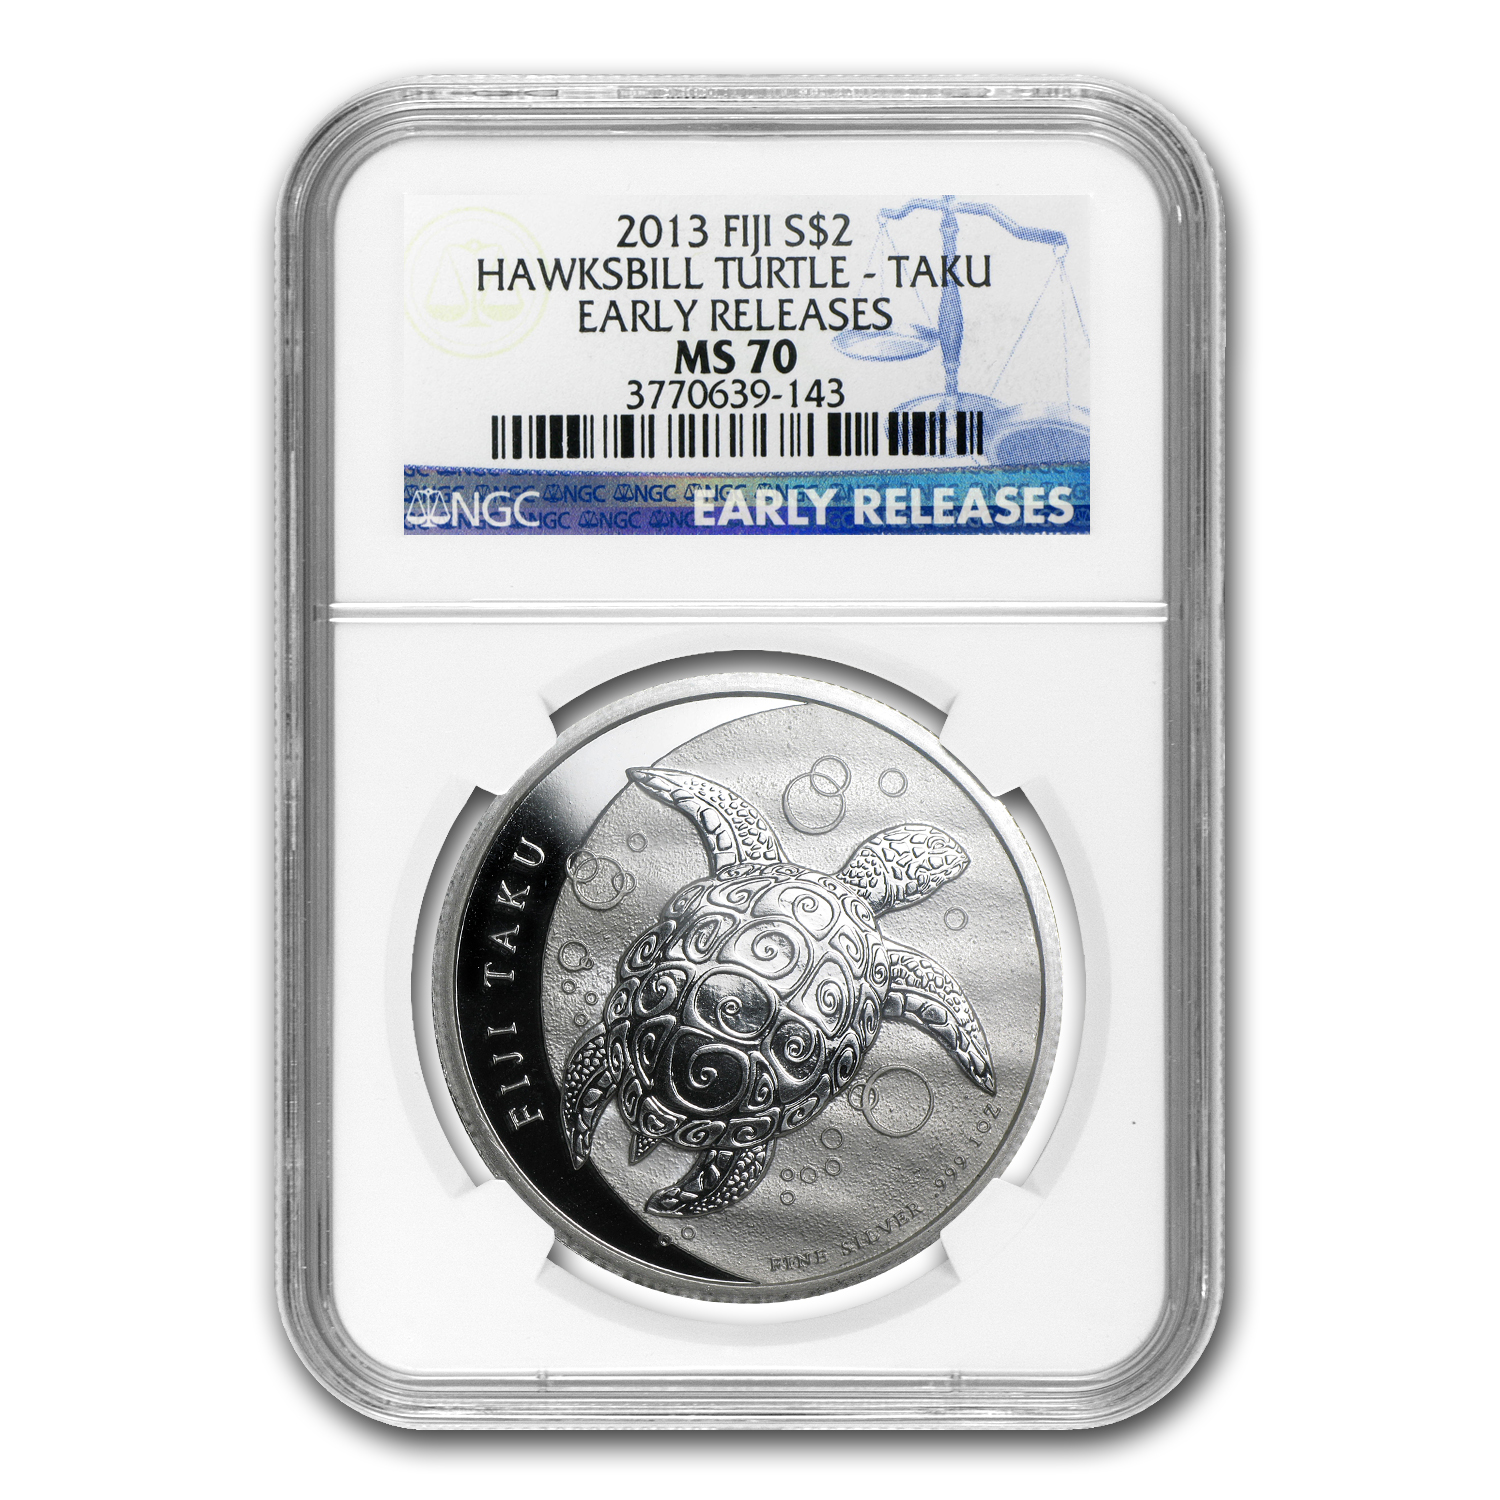 2013 1 oz Silver $2 Fiji Taku MS-70 NGC Early Release